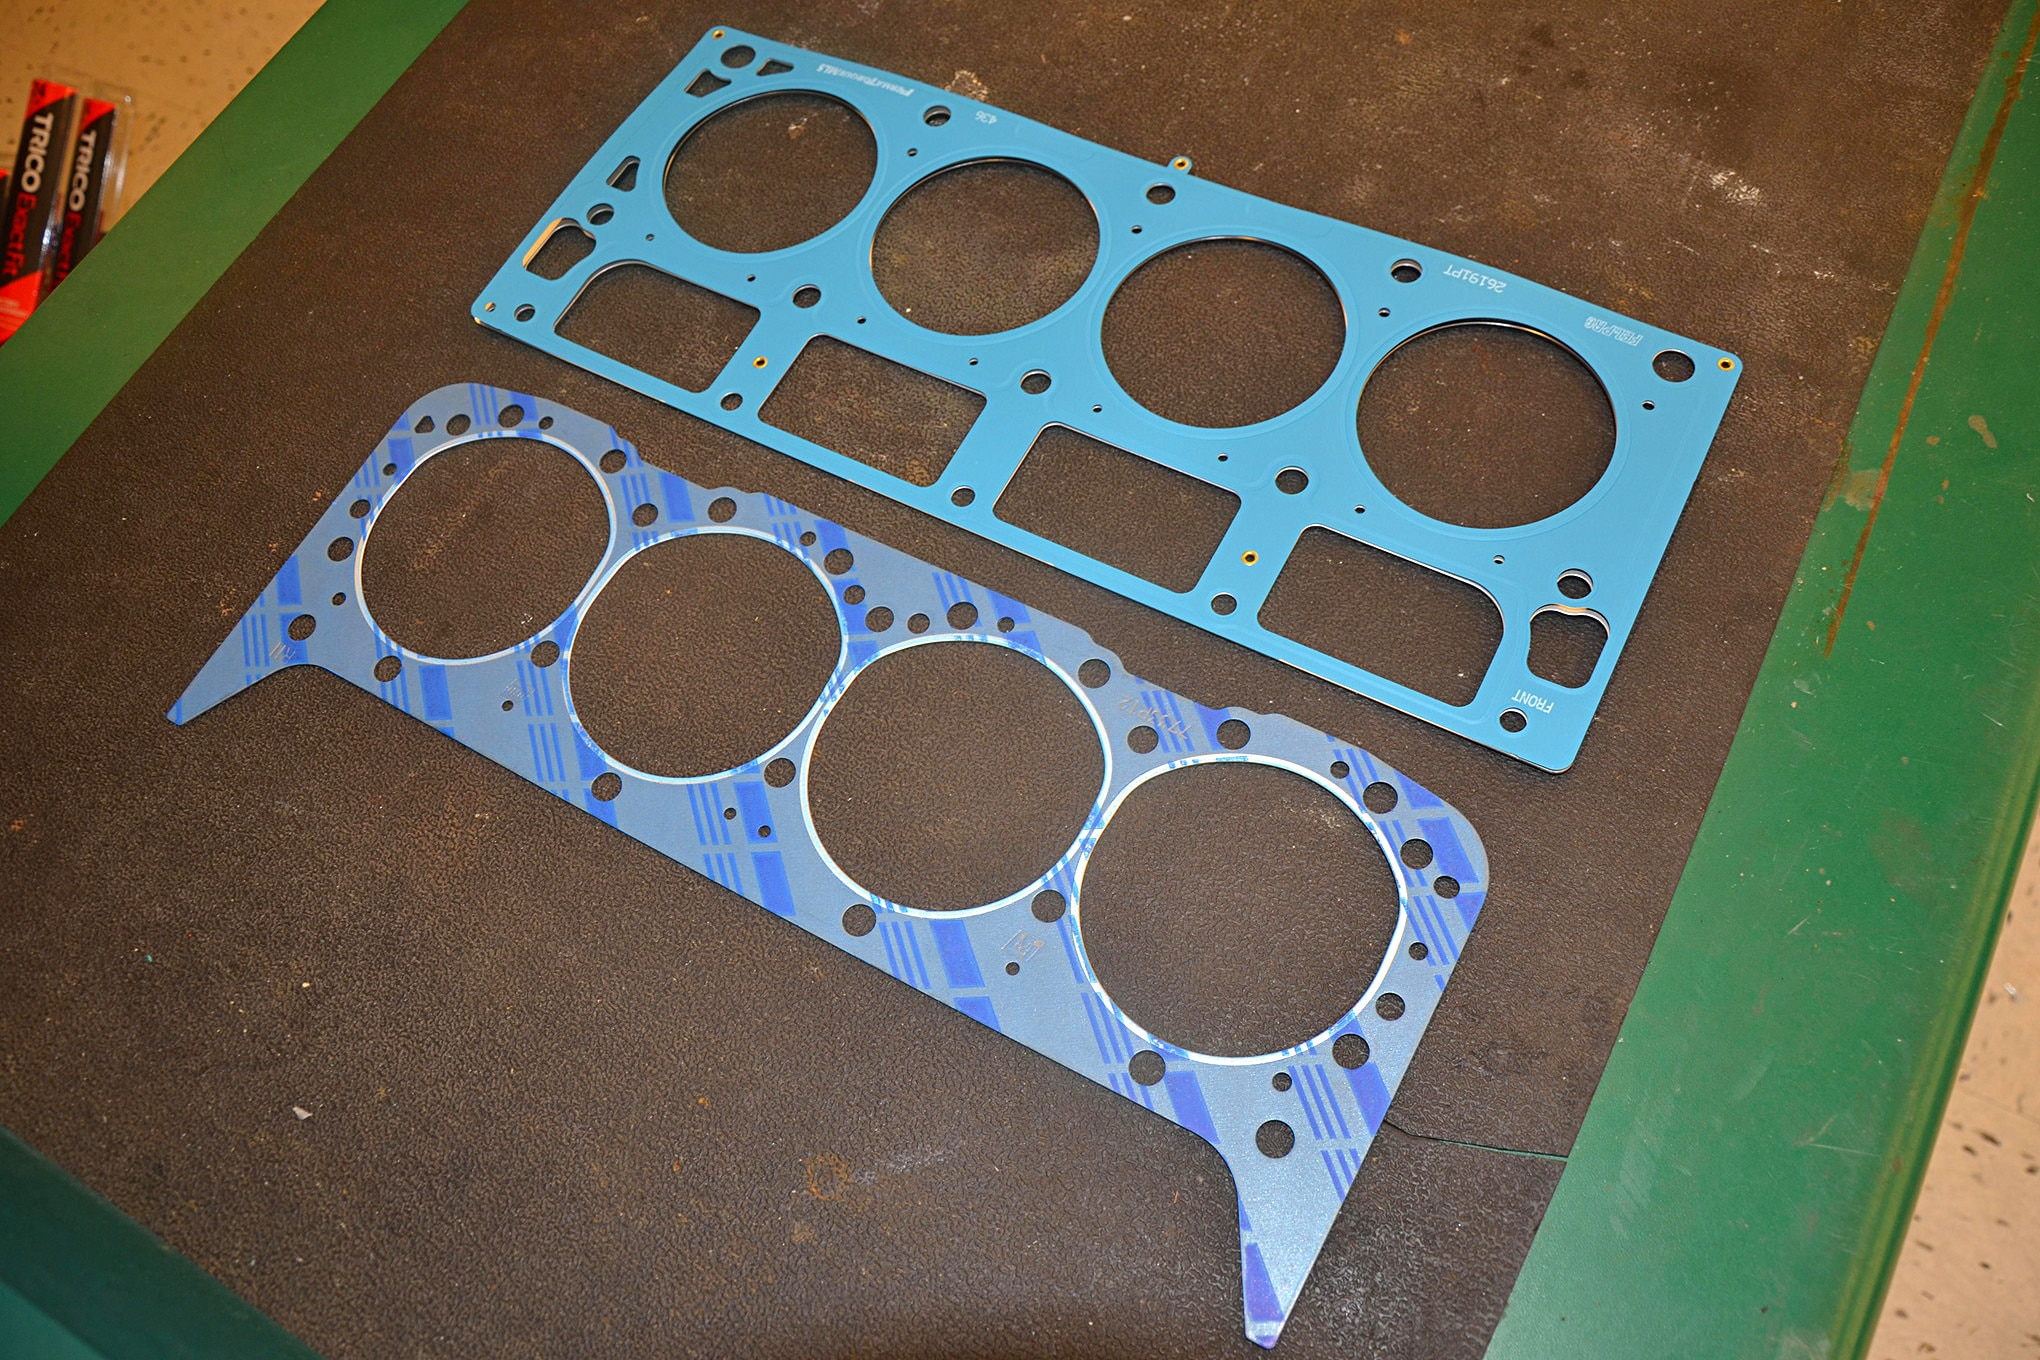 We also visited our local O'Reilly Auto Parts where we got a side-by-side look at a Fel-Pro PermaTorque MLS for a GM 5.3L LS (top) and a Fel-Pro PermaTorque composite gasket (bottom) for a GM Vortec 350 head. The MLS head gasket has become the standard for head sealing in many modern engines, but composites are still used as well. You can see the individual layers and rivets that hold everything together on the Felpro MLS and the blue silicon that Felpro uses to seal both gaskets. Cleanliness is next to godliness when it comes to proper head gasket installation.